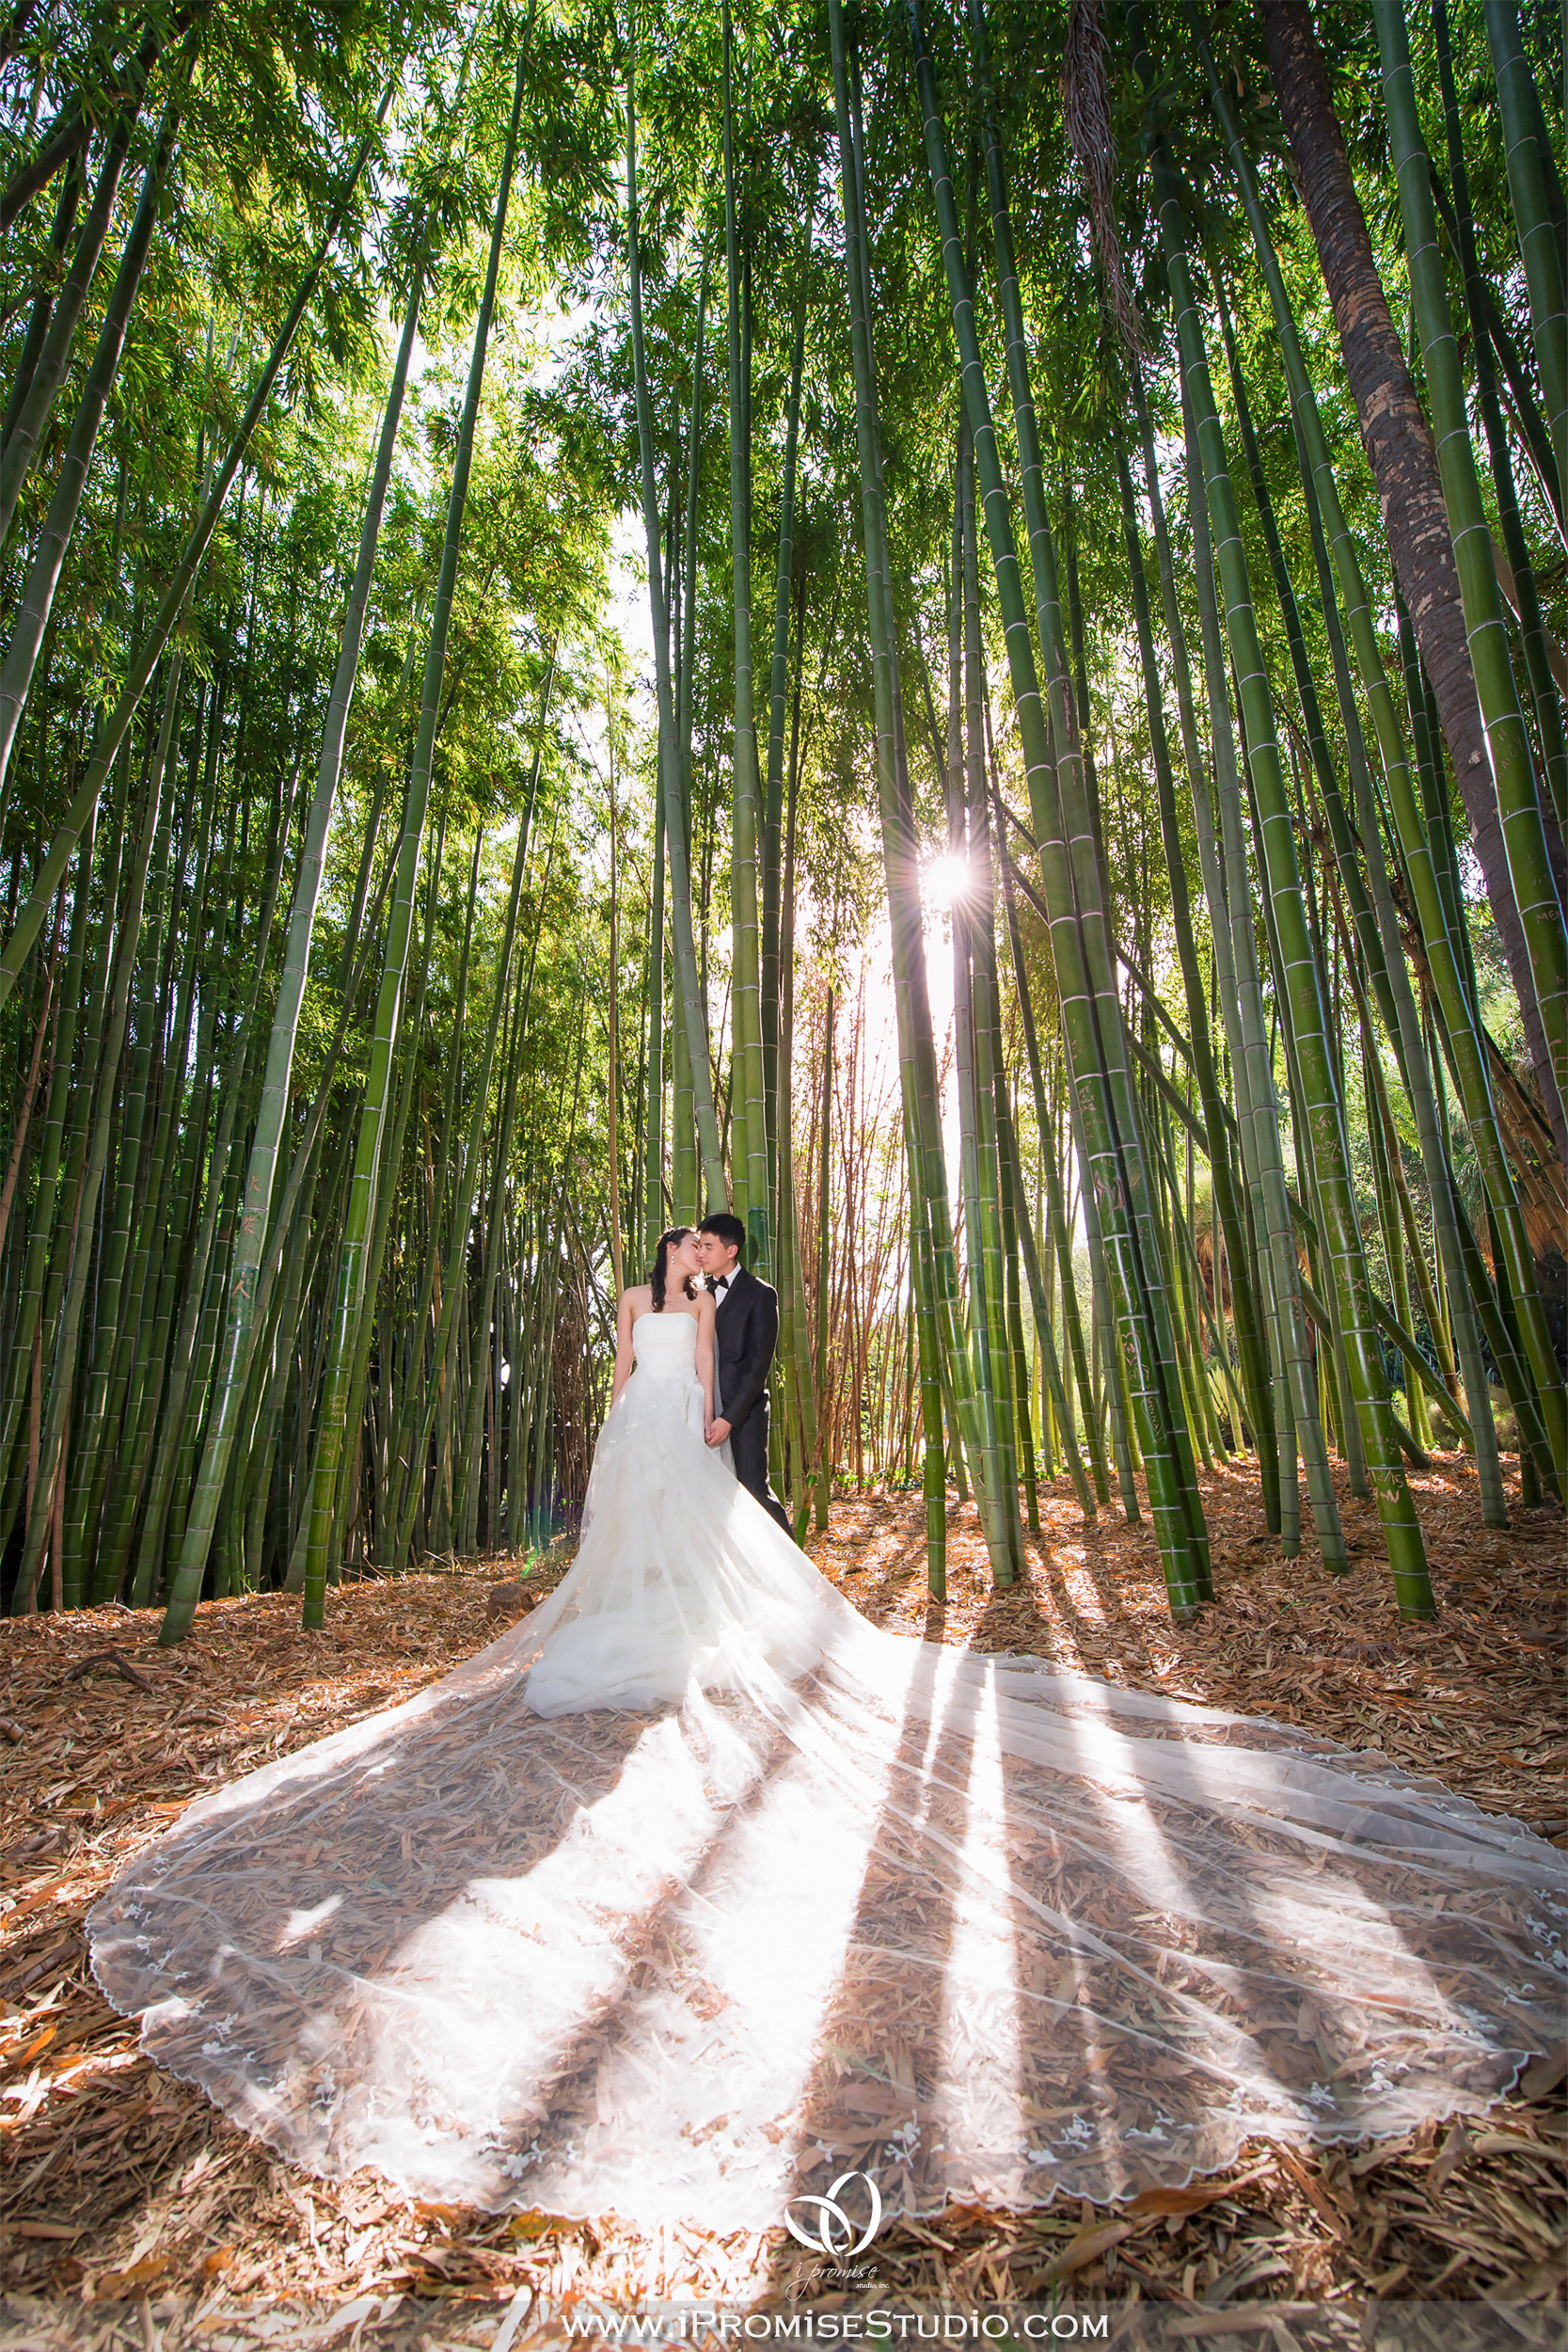 Arcadia Los Angeles County Arboretum and Botanic Garden-engagement wedding 01.JPG